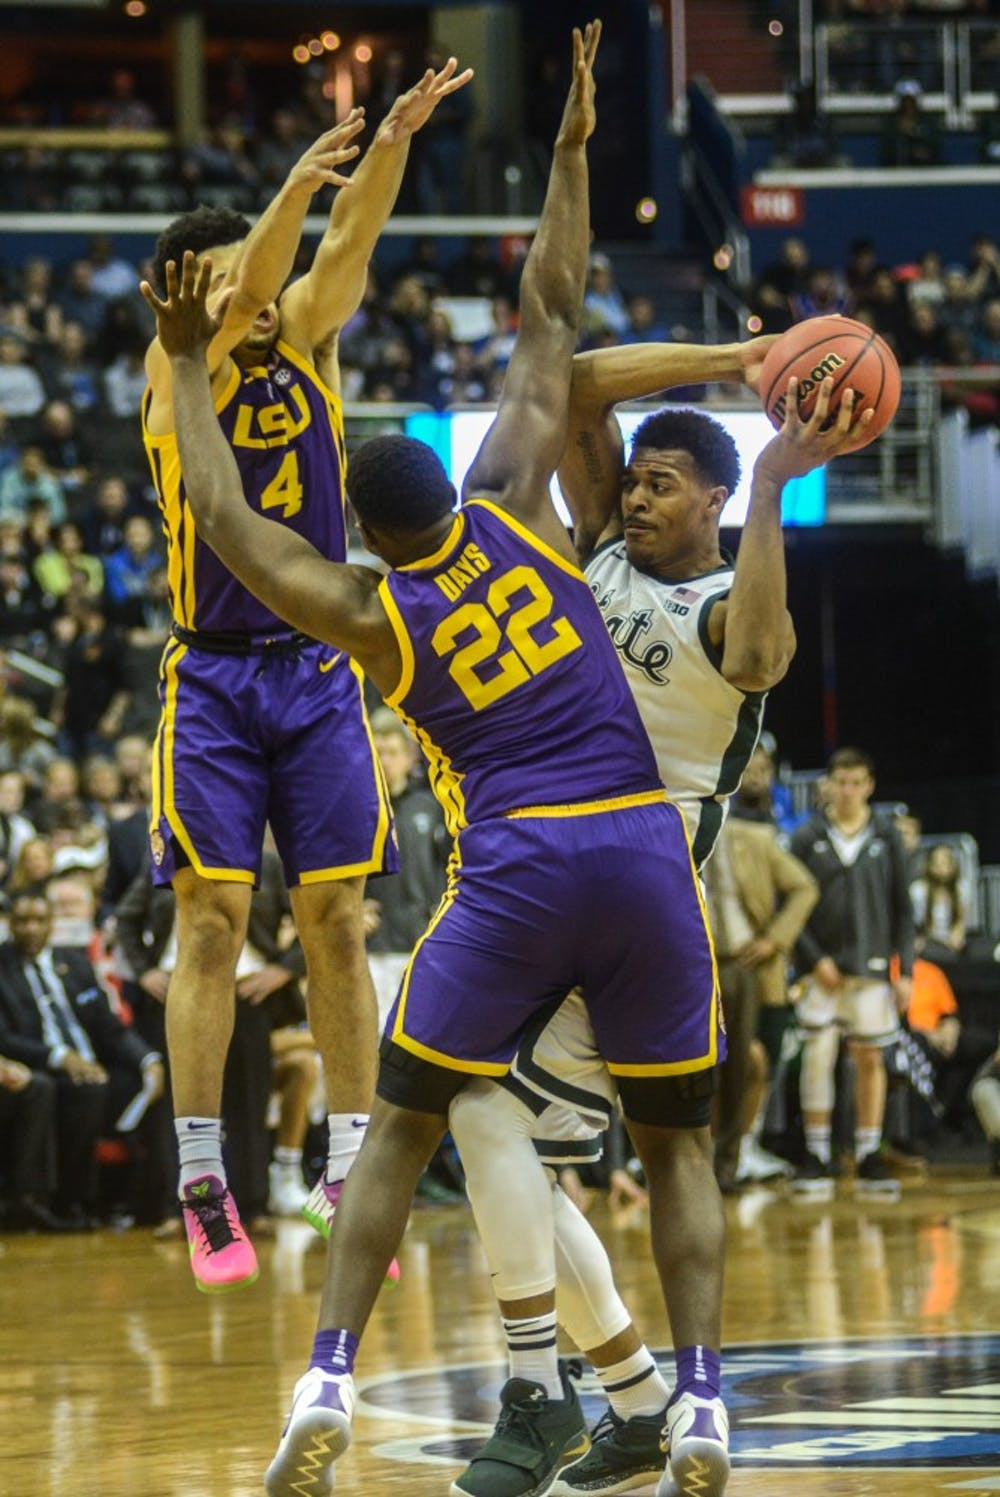 Sophomore forward Xavier Tillman (23) defends the ball against LSU's forward Darius Days (22) and guard Skylar Mays (4) during the game against LSU at Capital One Arena on March 29, 2019. The Spartans defeated the Tigers, 80-63.